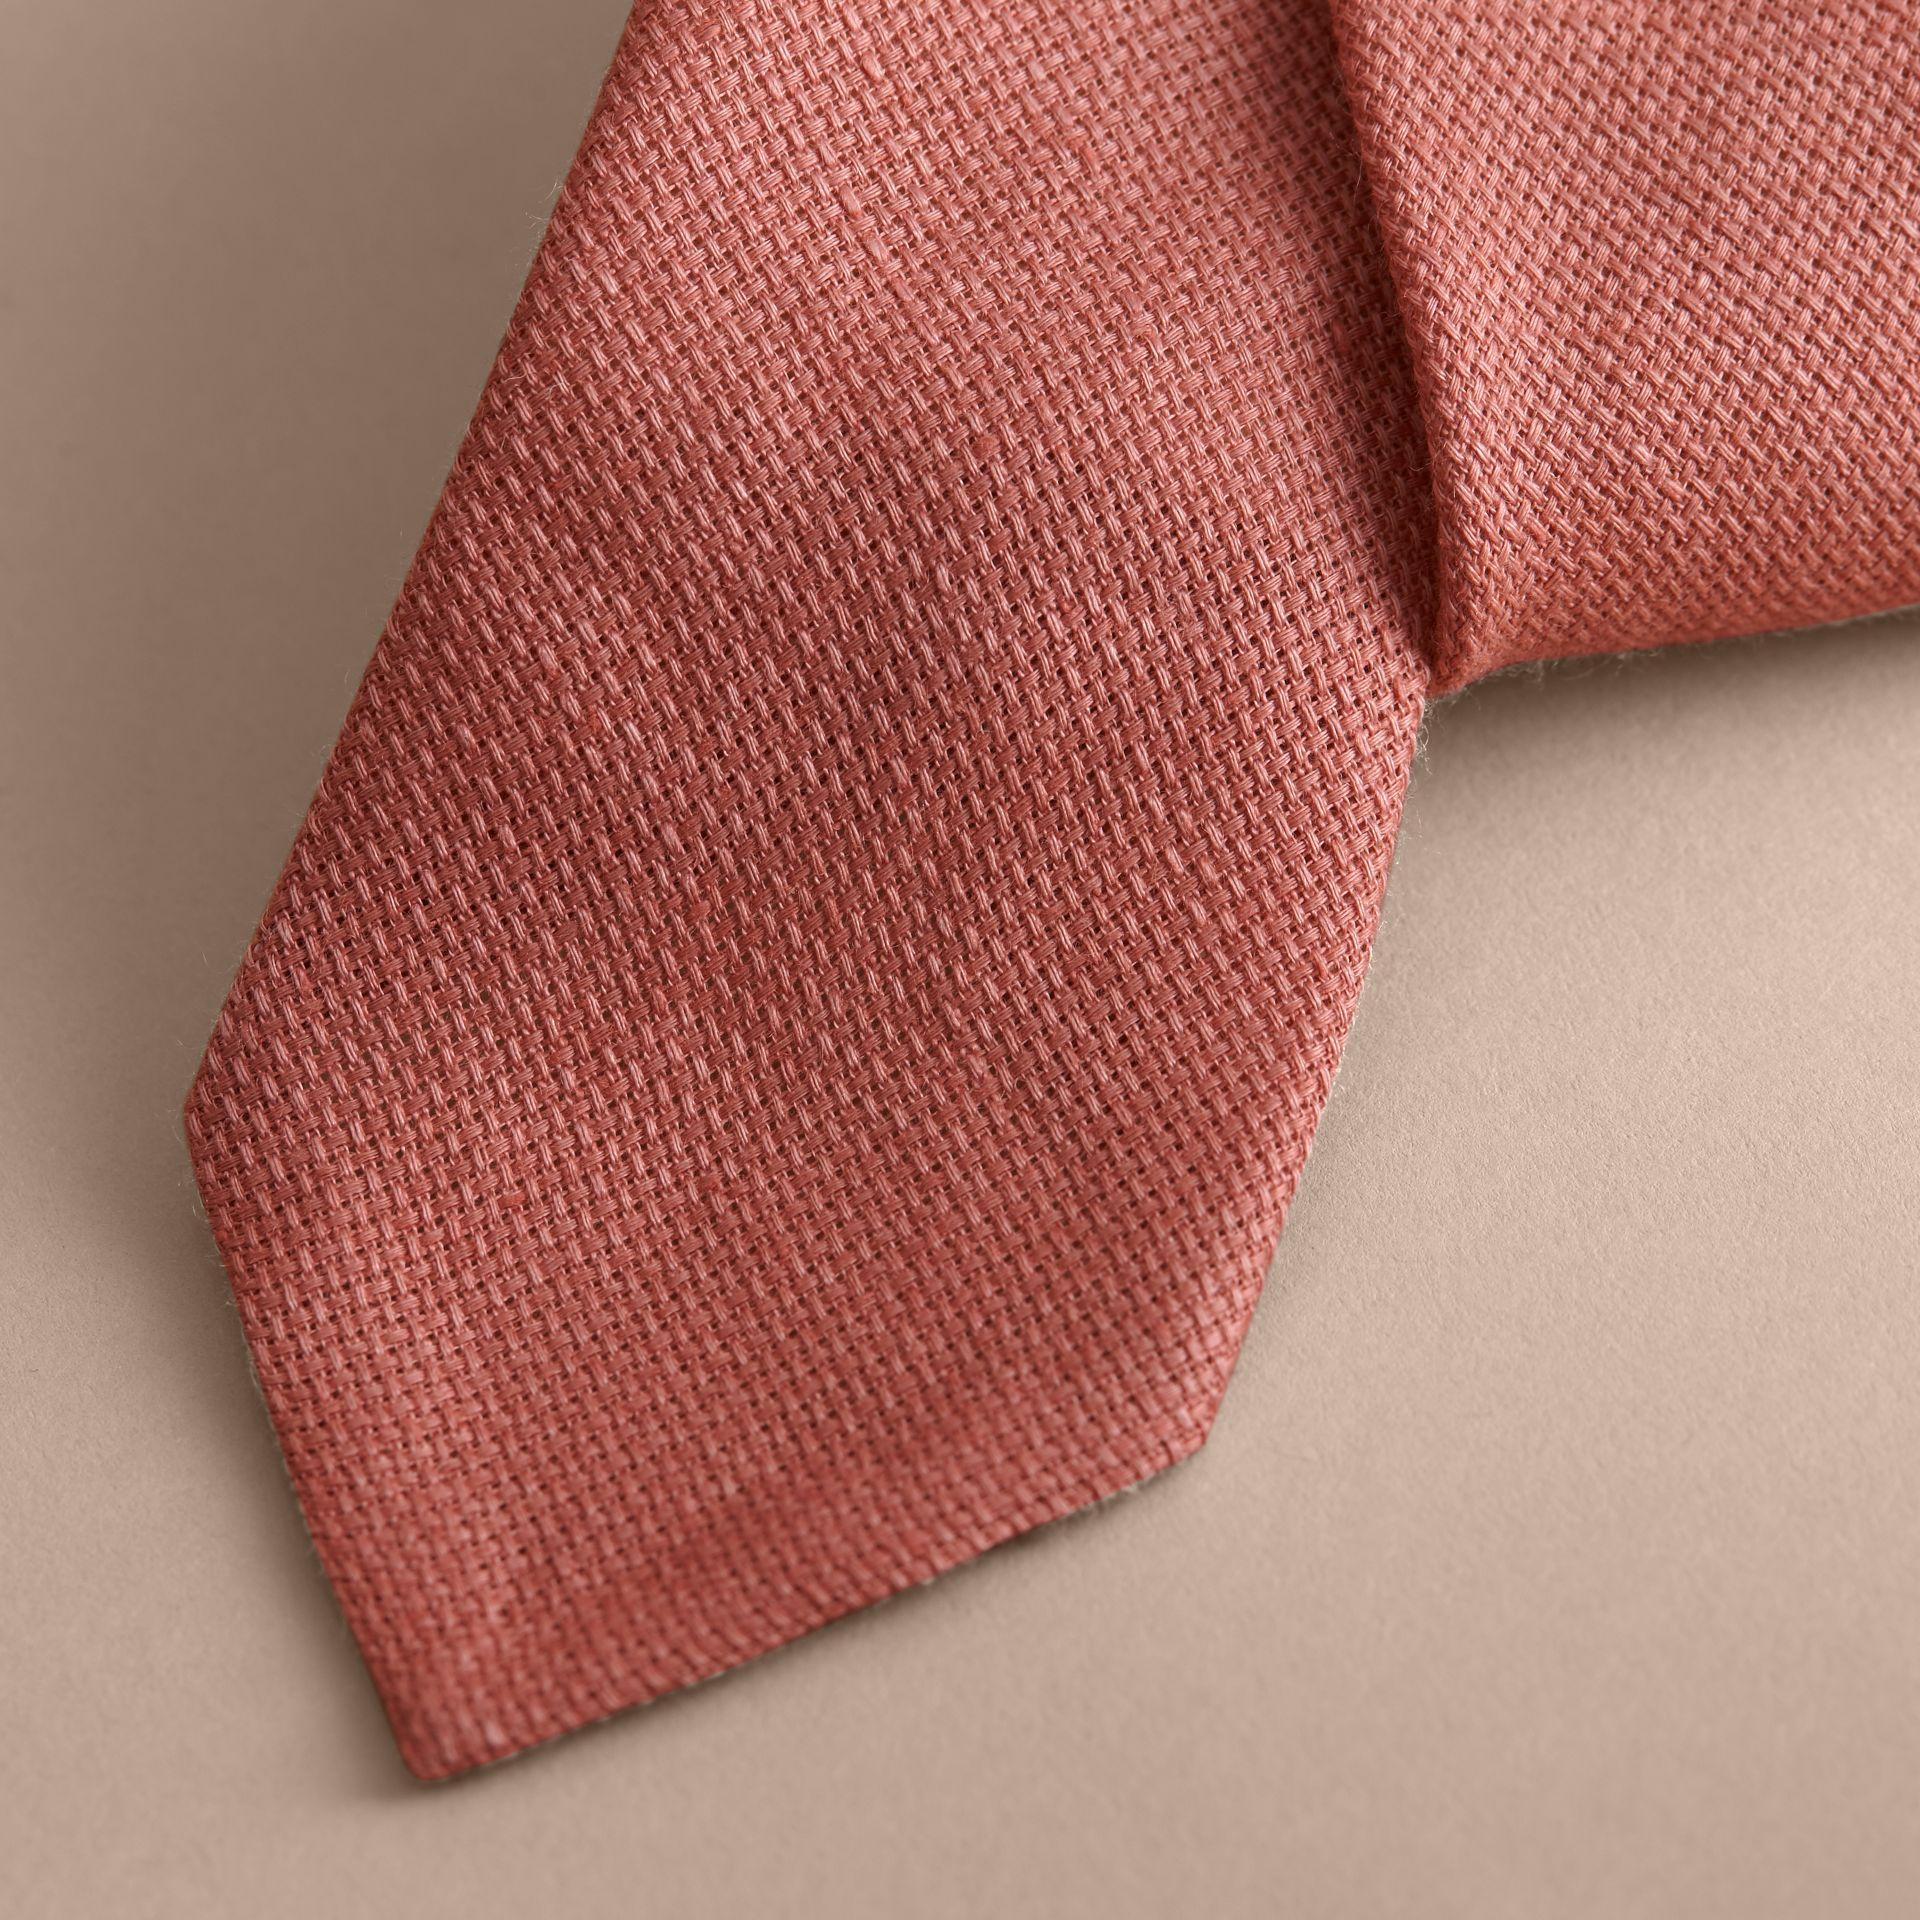 Modern Cut Linen Tie in Pale Cinnamon - Men | Burberry - gallery image 2